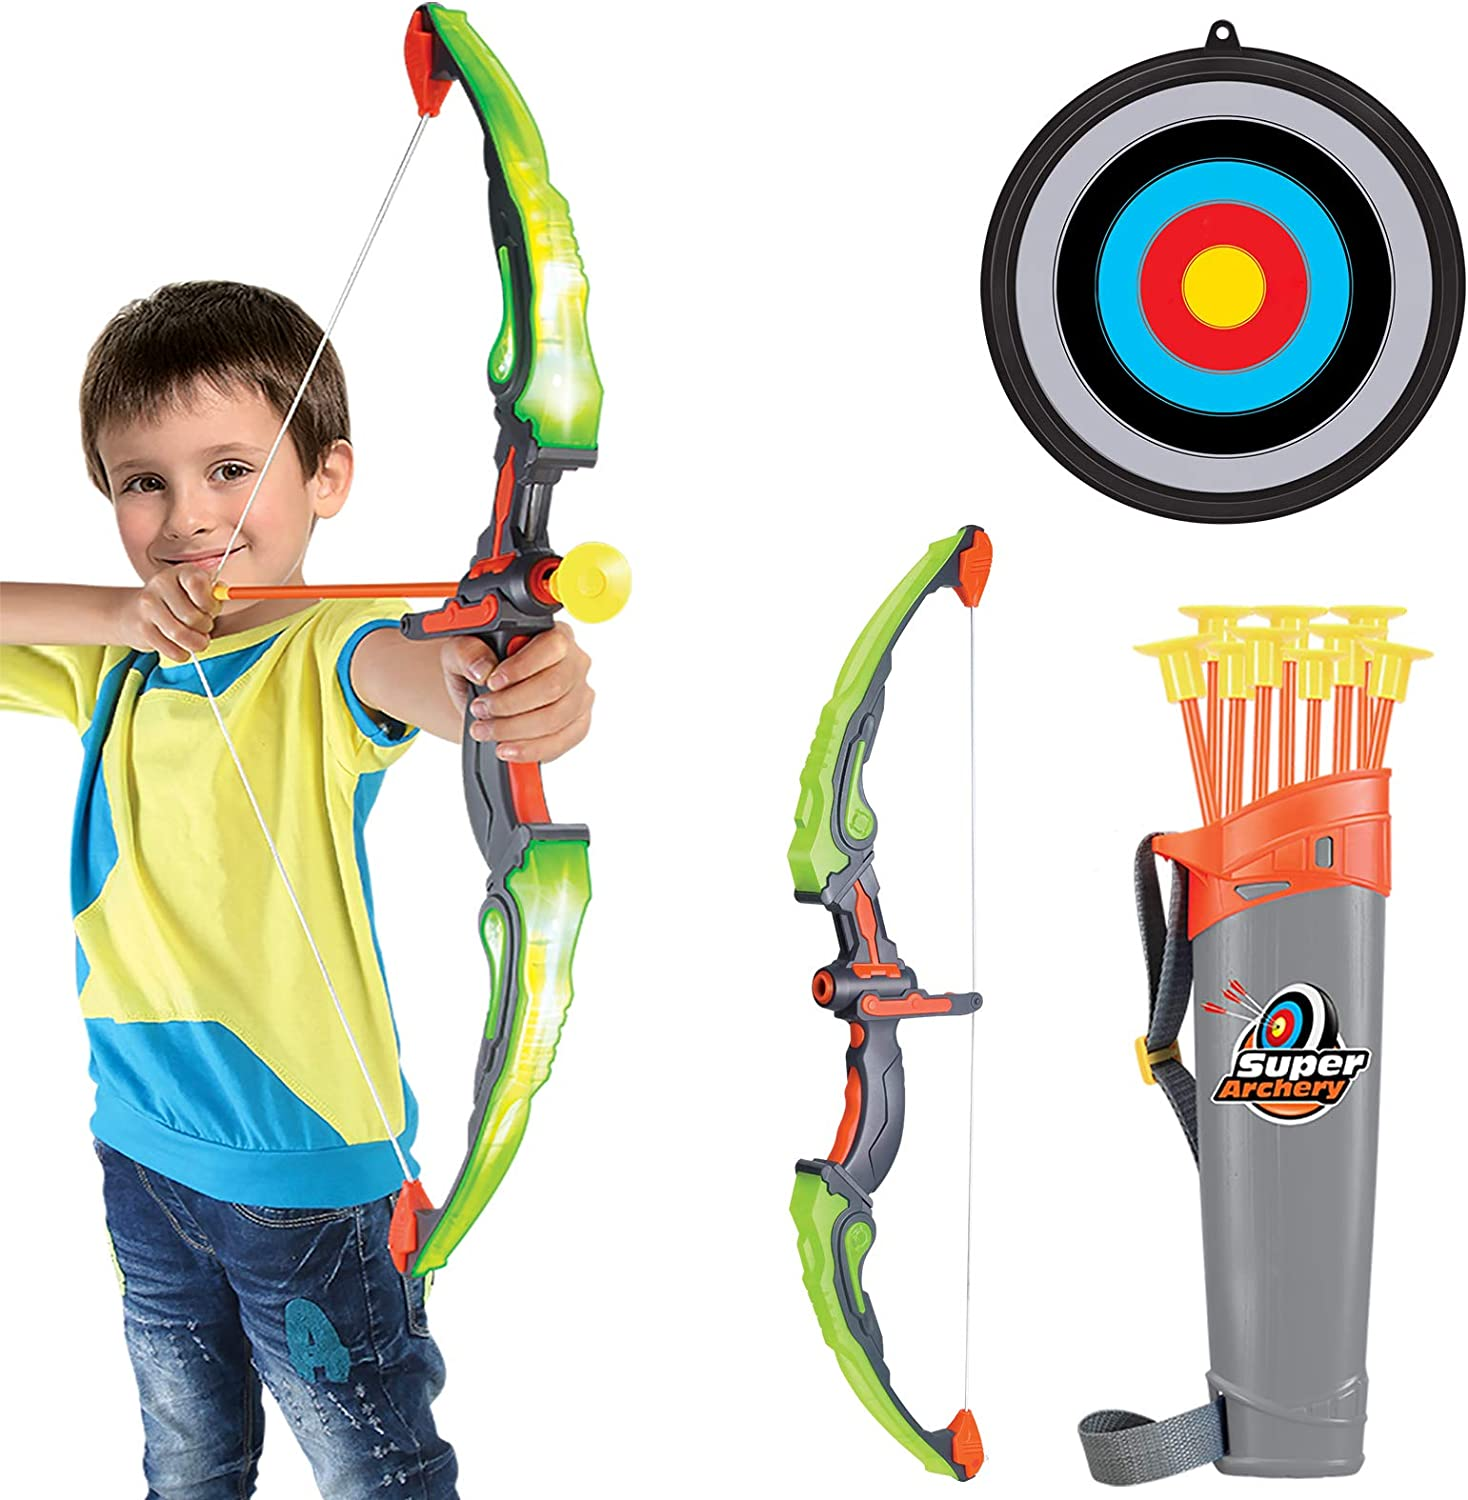 Conthfut Bow and Arrow for Kids with LED Flash Lights - Archery Bow with 9 Suction Cups Arrows, Target, and Quiver, Practice Outdoor Toys for Children Above 5-12 Years Old Green